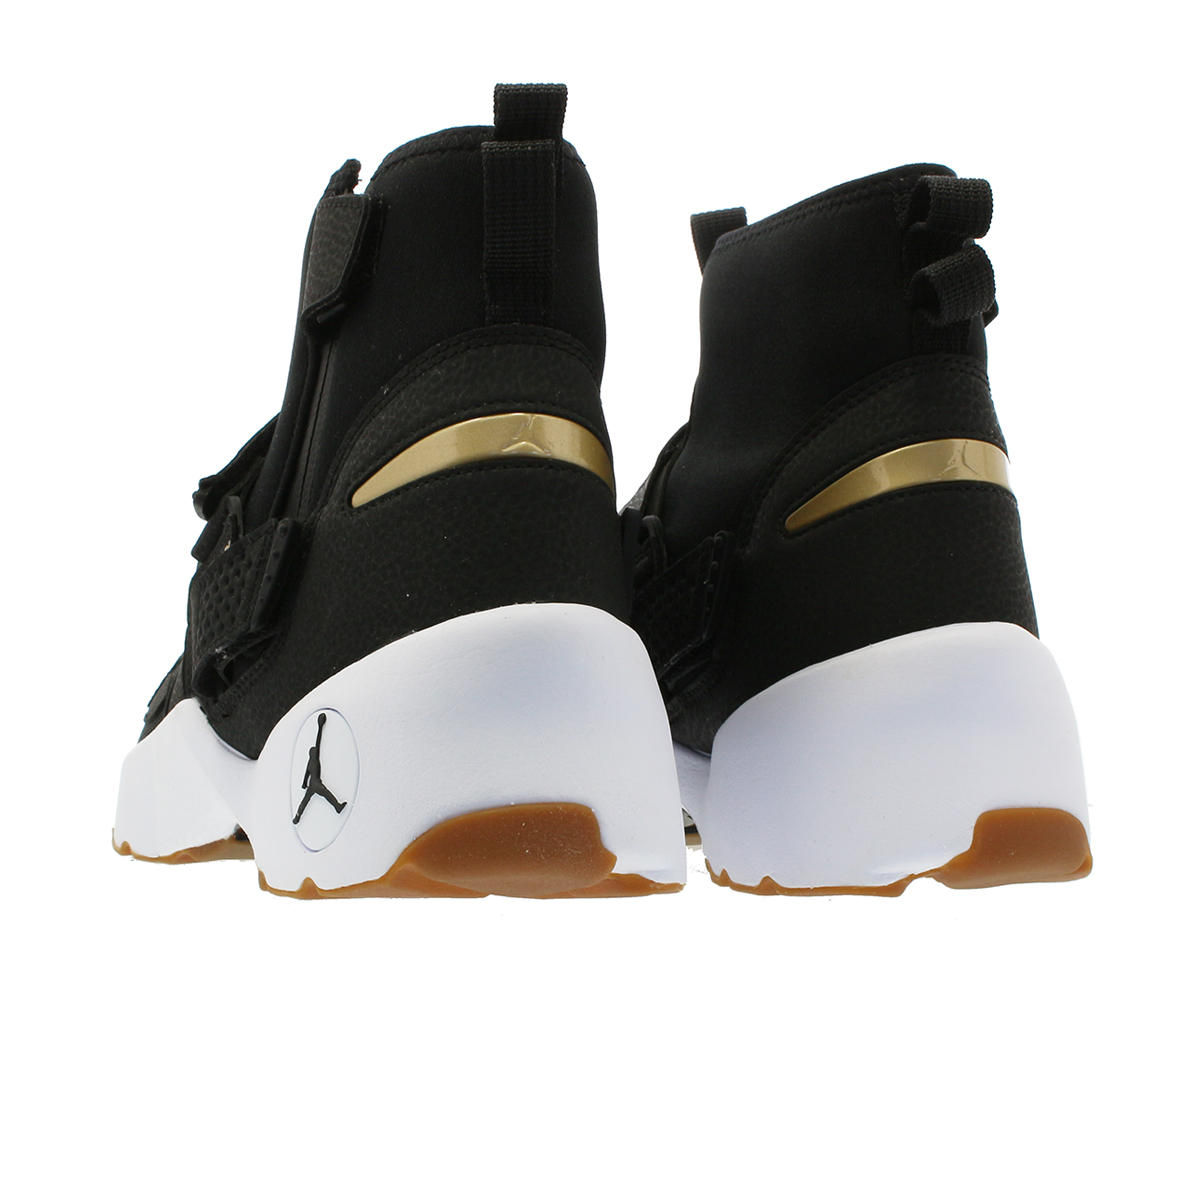 トランナー METALLIC GOLD/ ハイ NIKE JORDAN TRUNNER LX HIGH BLACK/ ジョーダン LX ナイキ WHITE